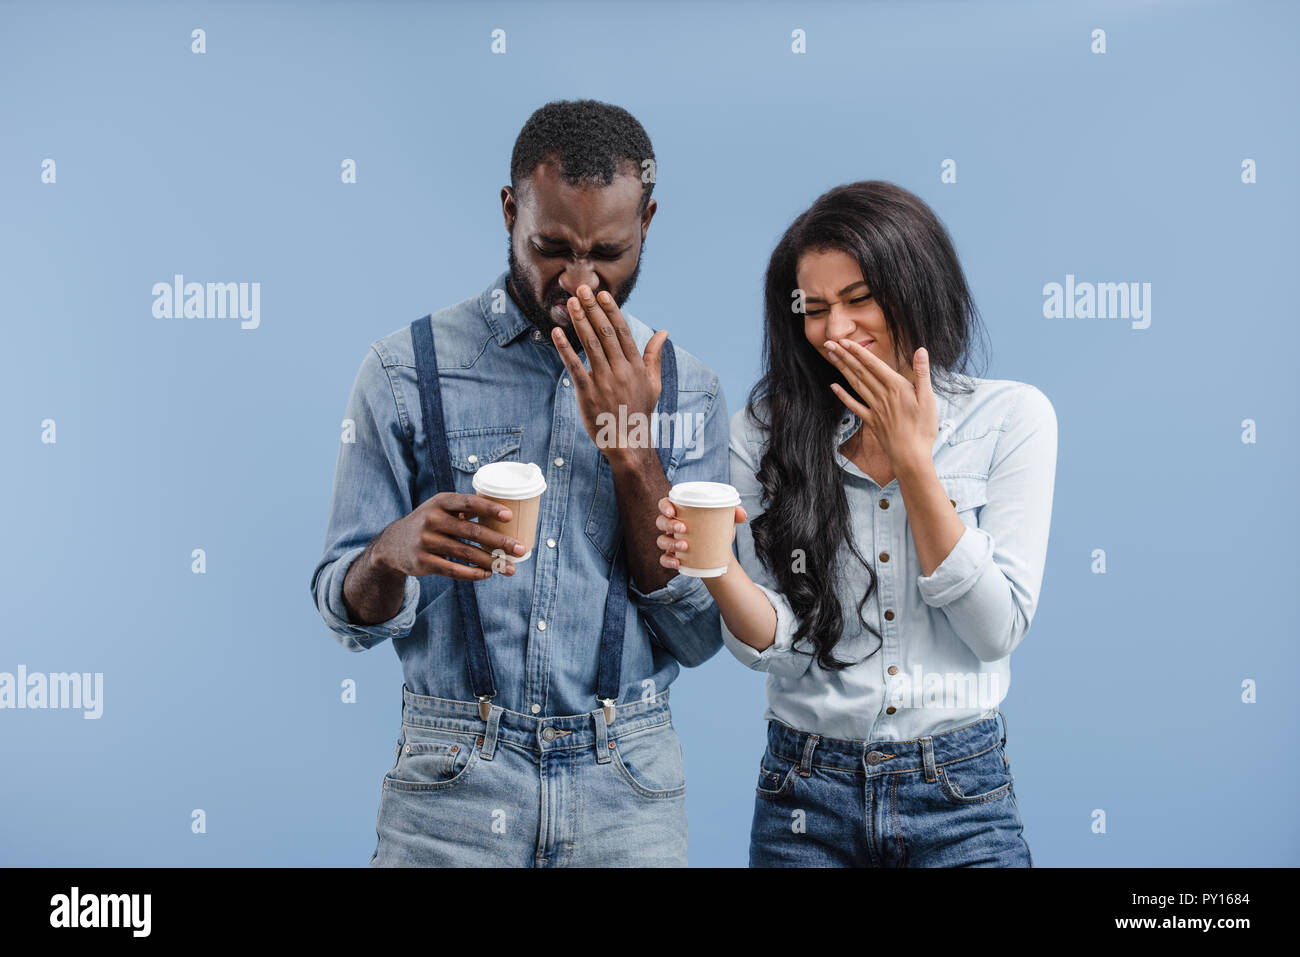 grimacing african american couple holding coffee to go and covering noses isolated on blue - Stock Image